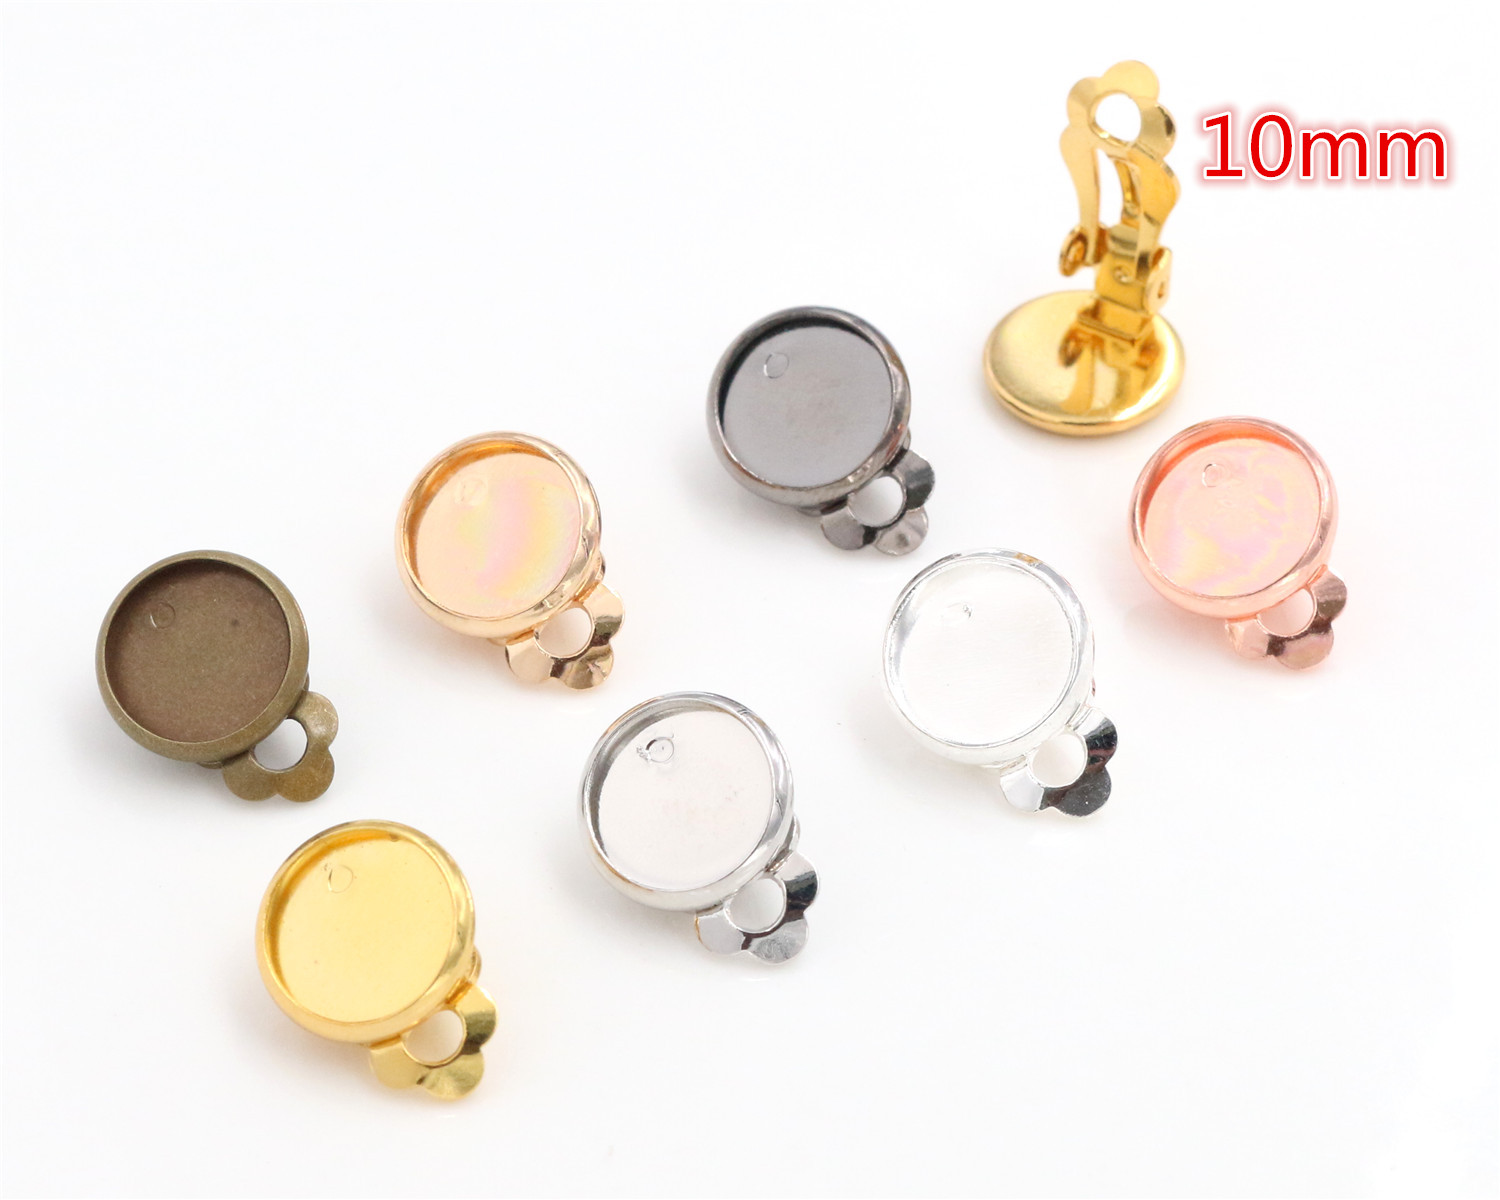 10mm 10pcs/lot Copper material Ear Clips 7 Colors Plated ,Earrings Blank/Base,Fit 10mm Glass Cabochons,earring setting